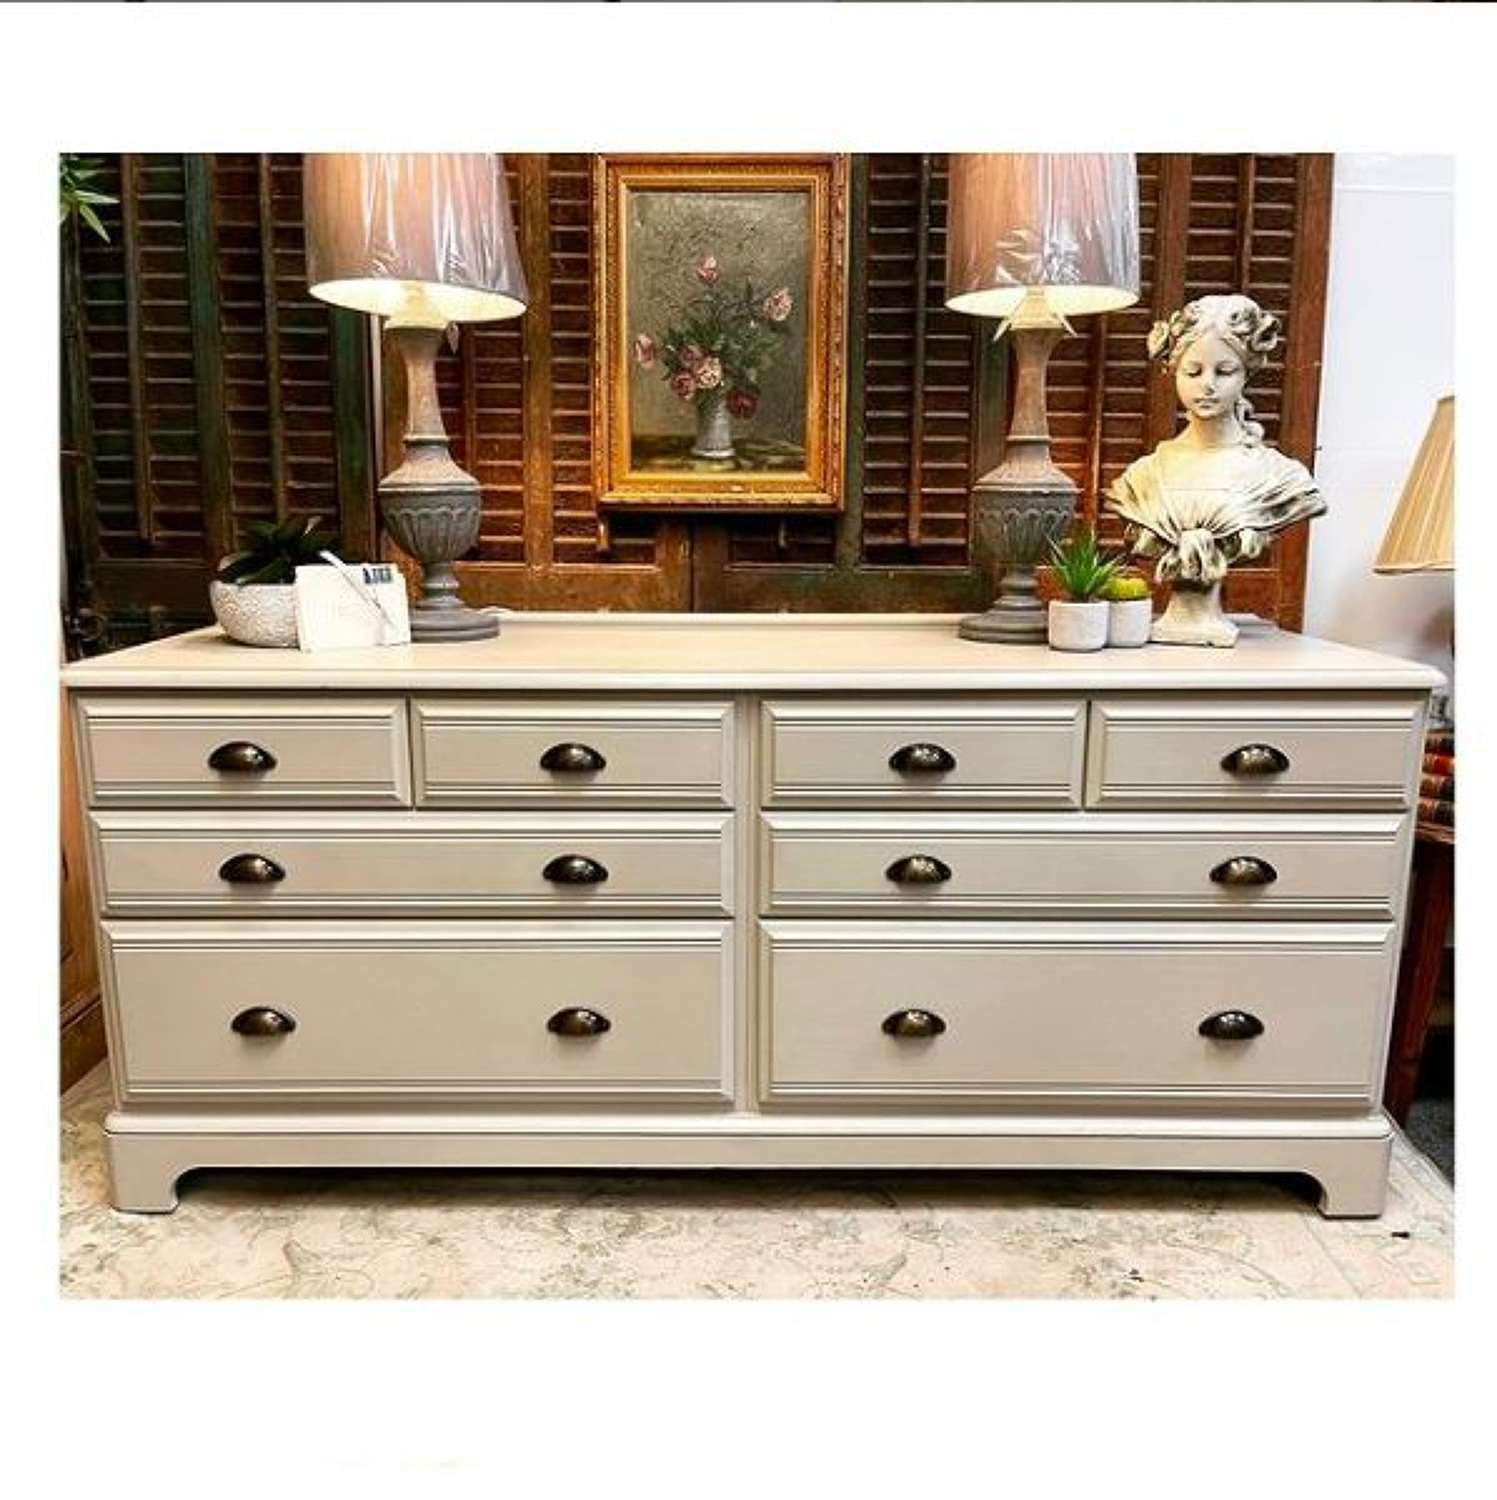 Multi drawer chestwith cup handles